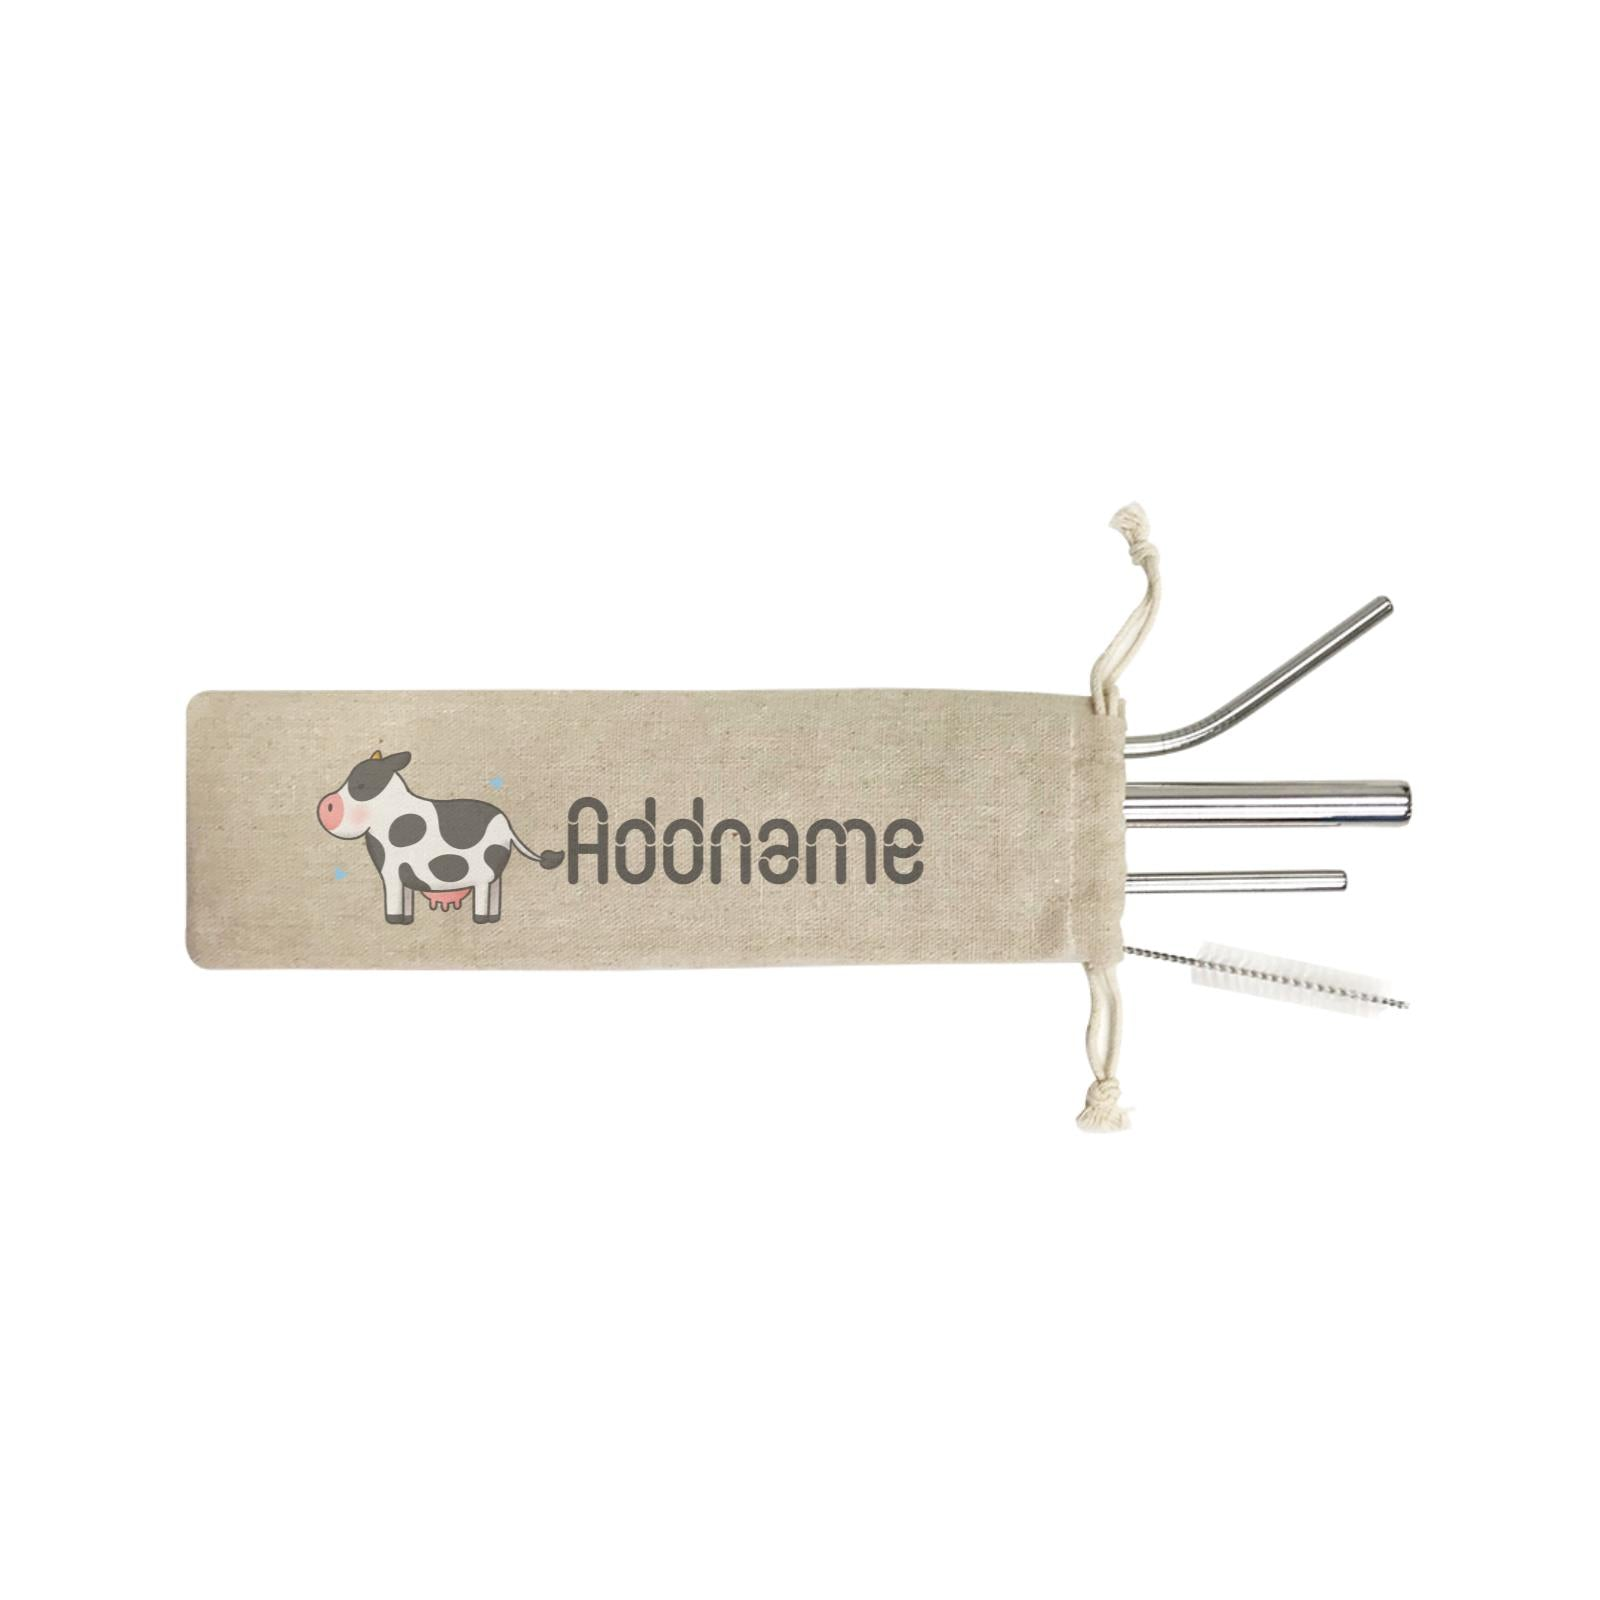 Cute Hand Drawn Style Cow Addname ST SZP 4-In-1 Stainless Steel Straw Set in Satchel